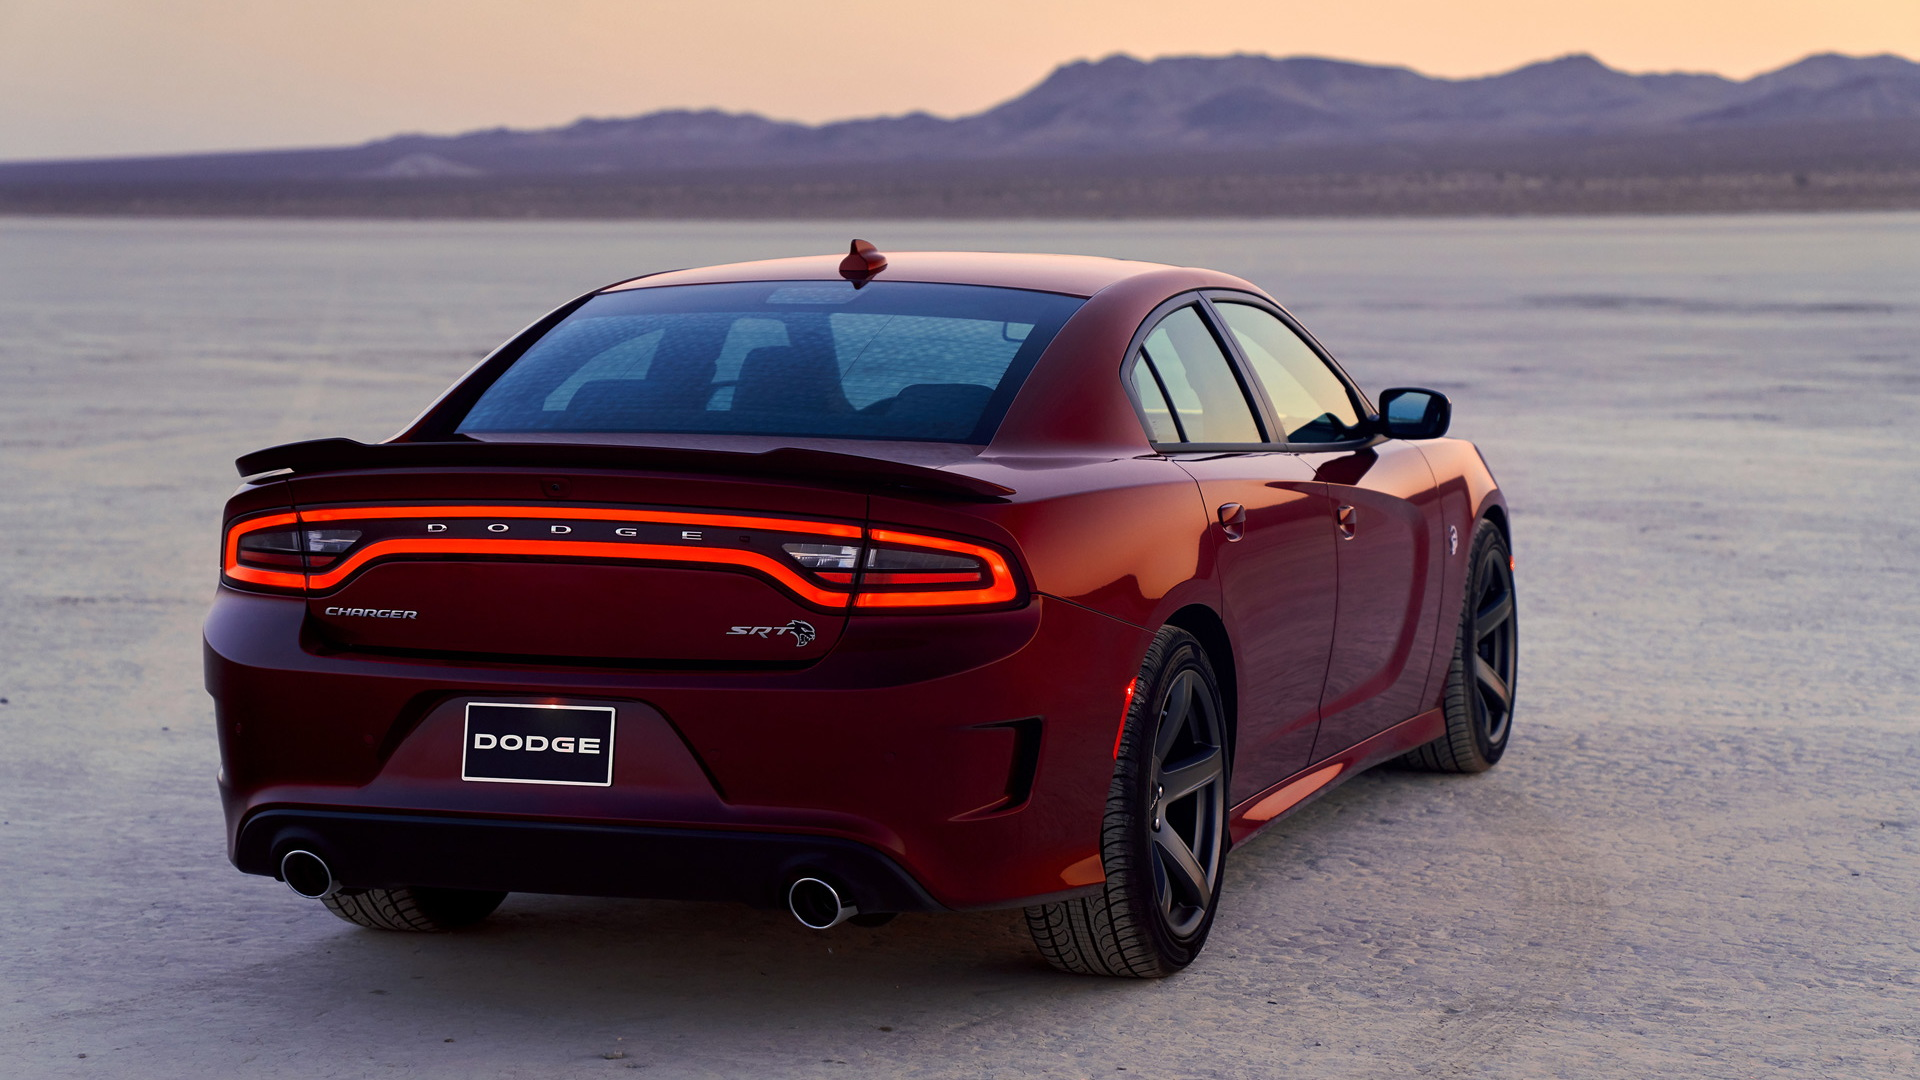 Dodge Charger Srt >> 2019 Dodge Charger Srt Hellcat Gets Revised Look Demon Tech